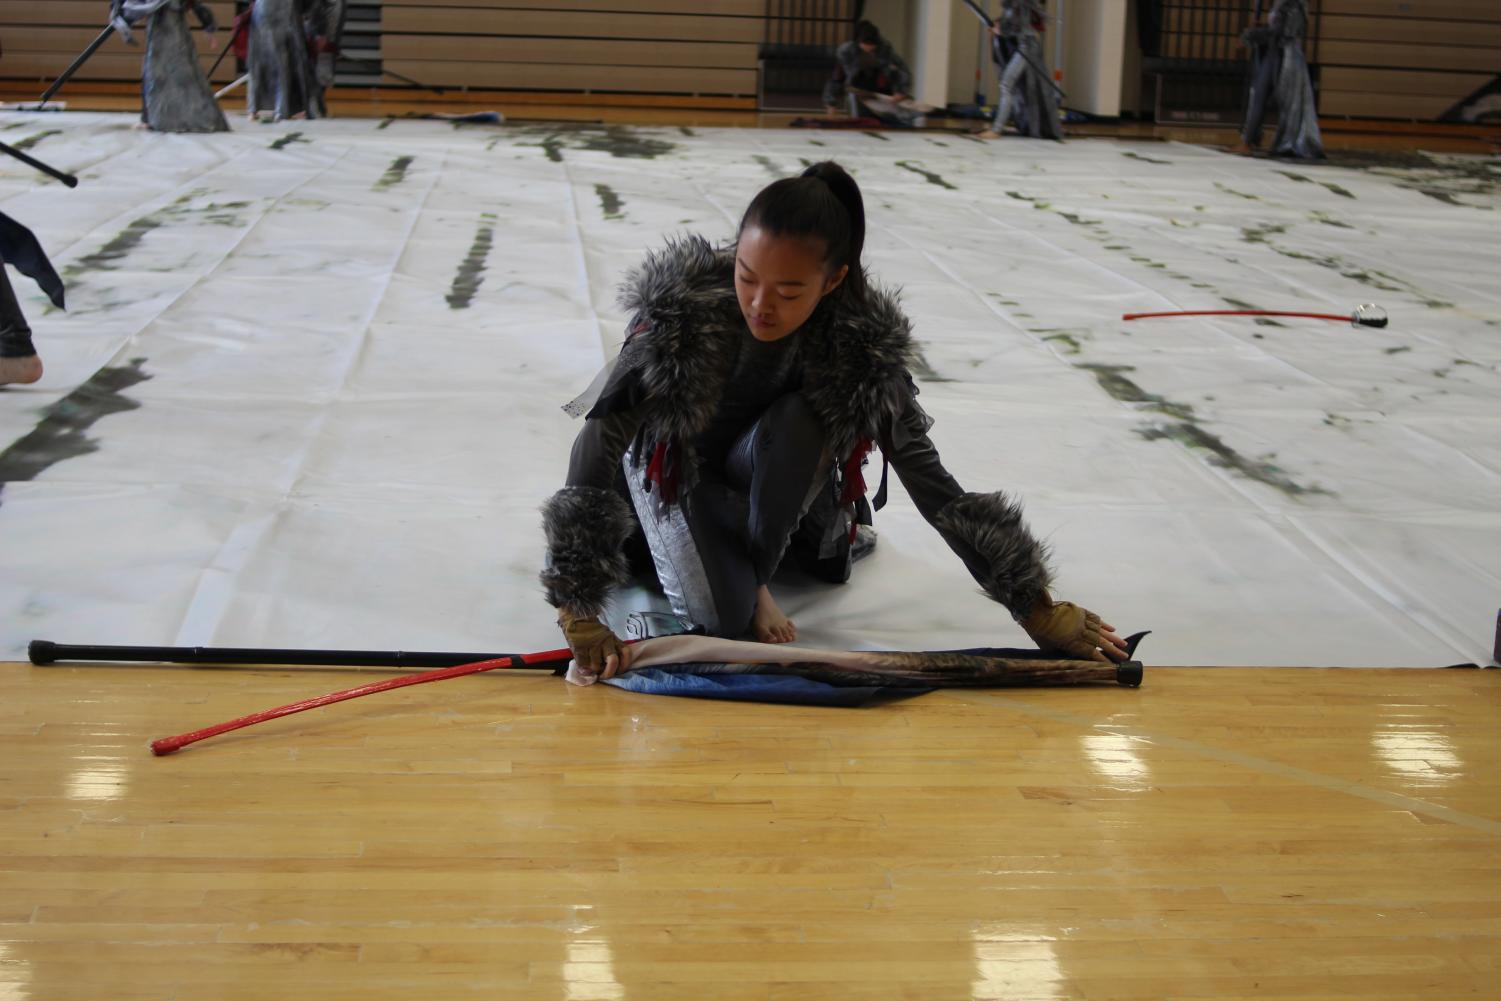 Rolling+out+a+large+painted+mat%2C+sophomore+Suemin+Yang+helps+the+color+guard+prepare+the+gym+floor+for+their+performance.%0A